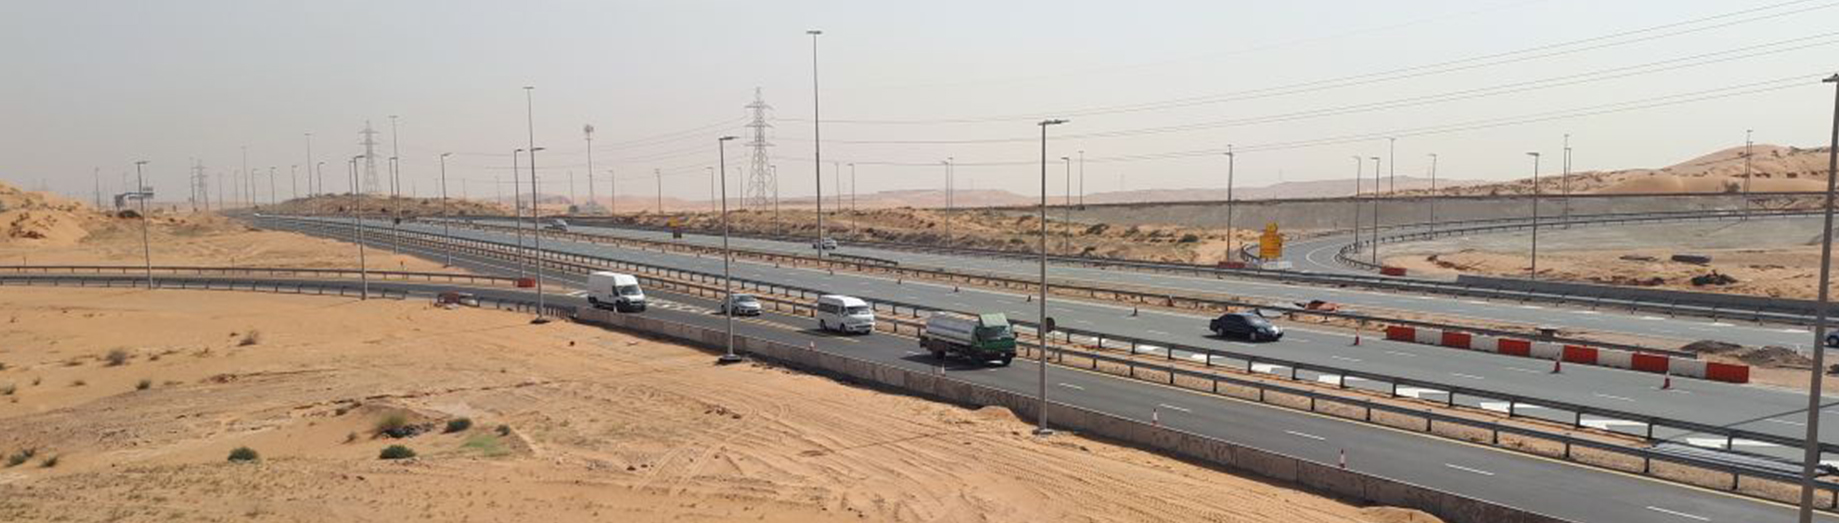 Development and Upgrading of Al Ittihad-Taween Road - 2nd Stage